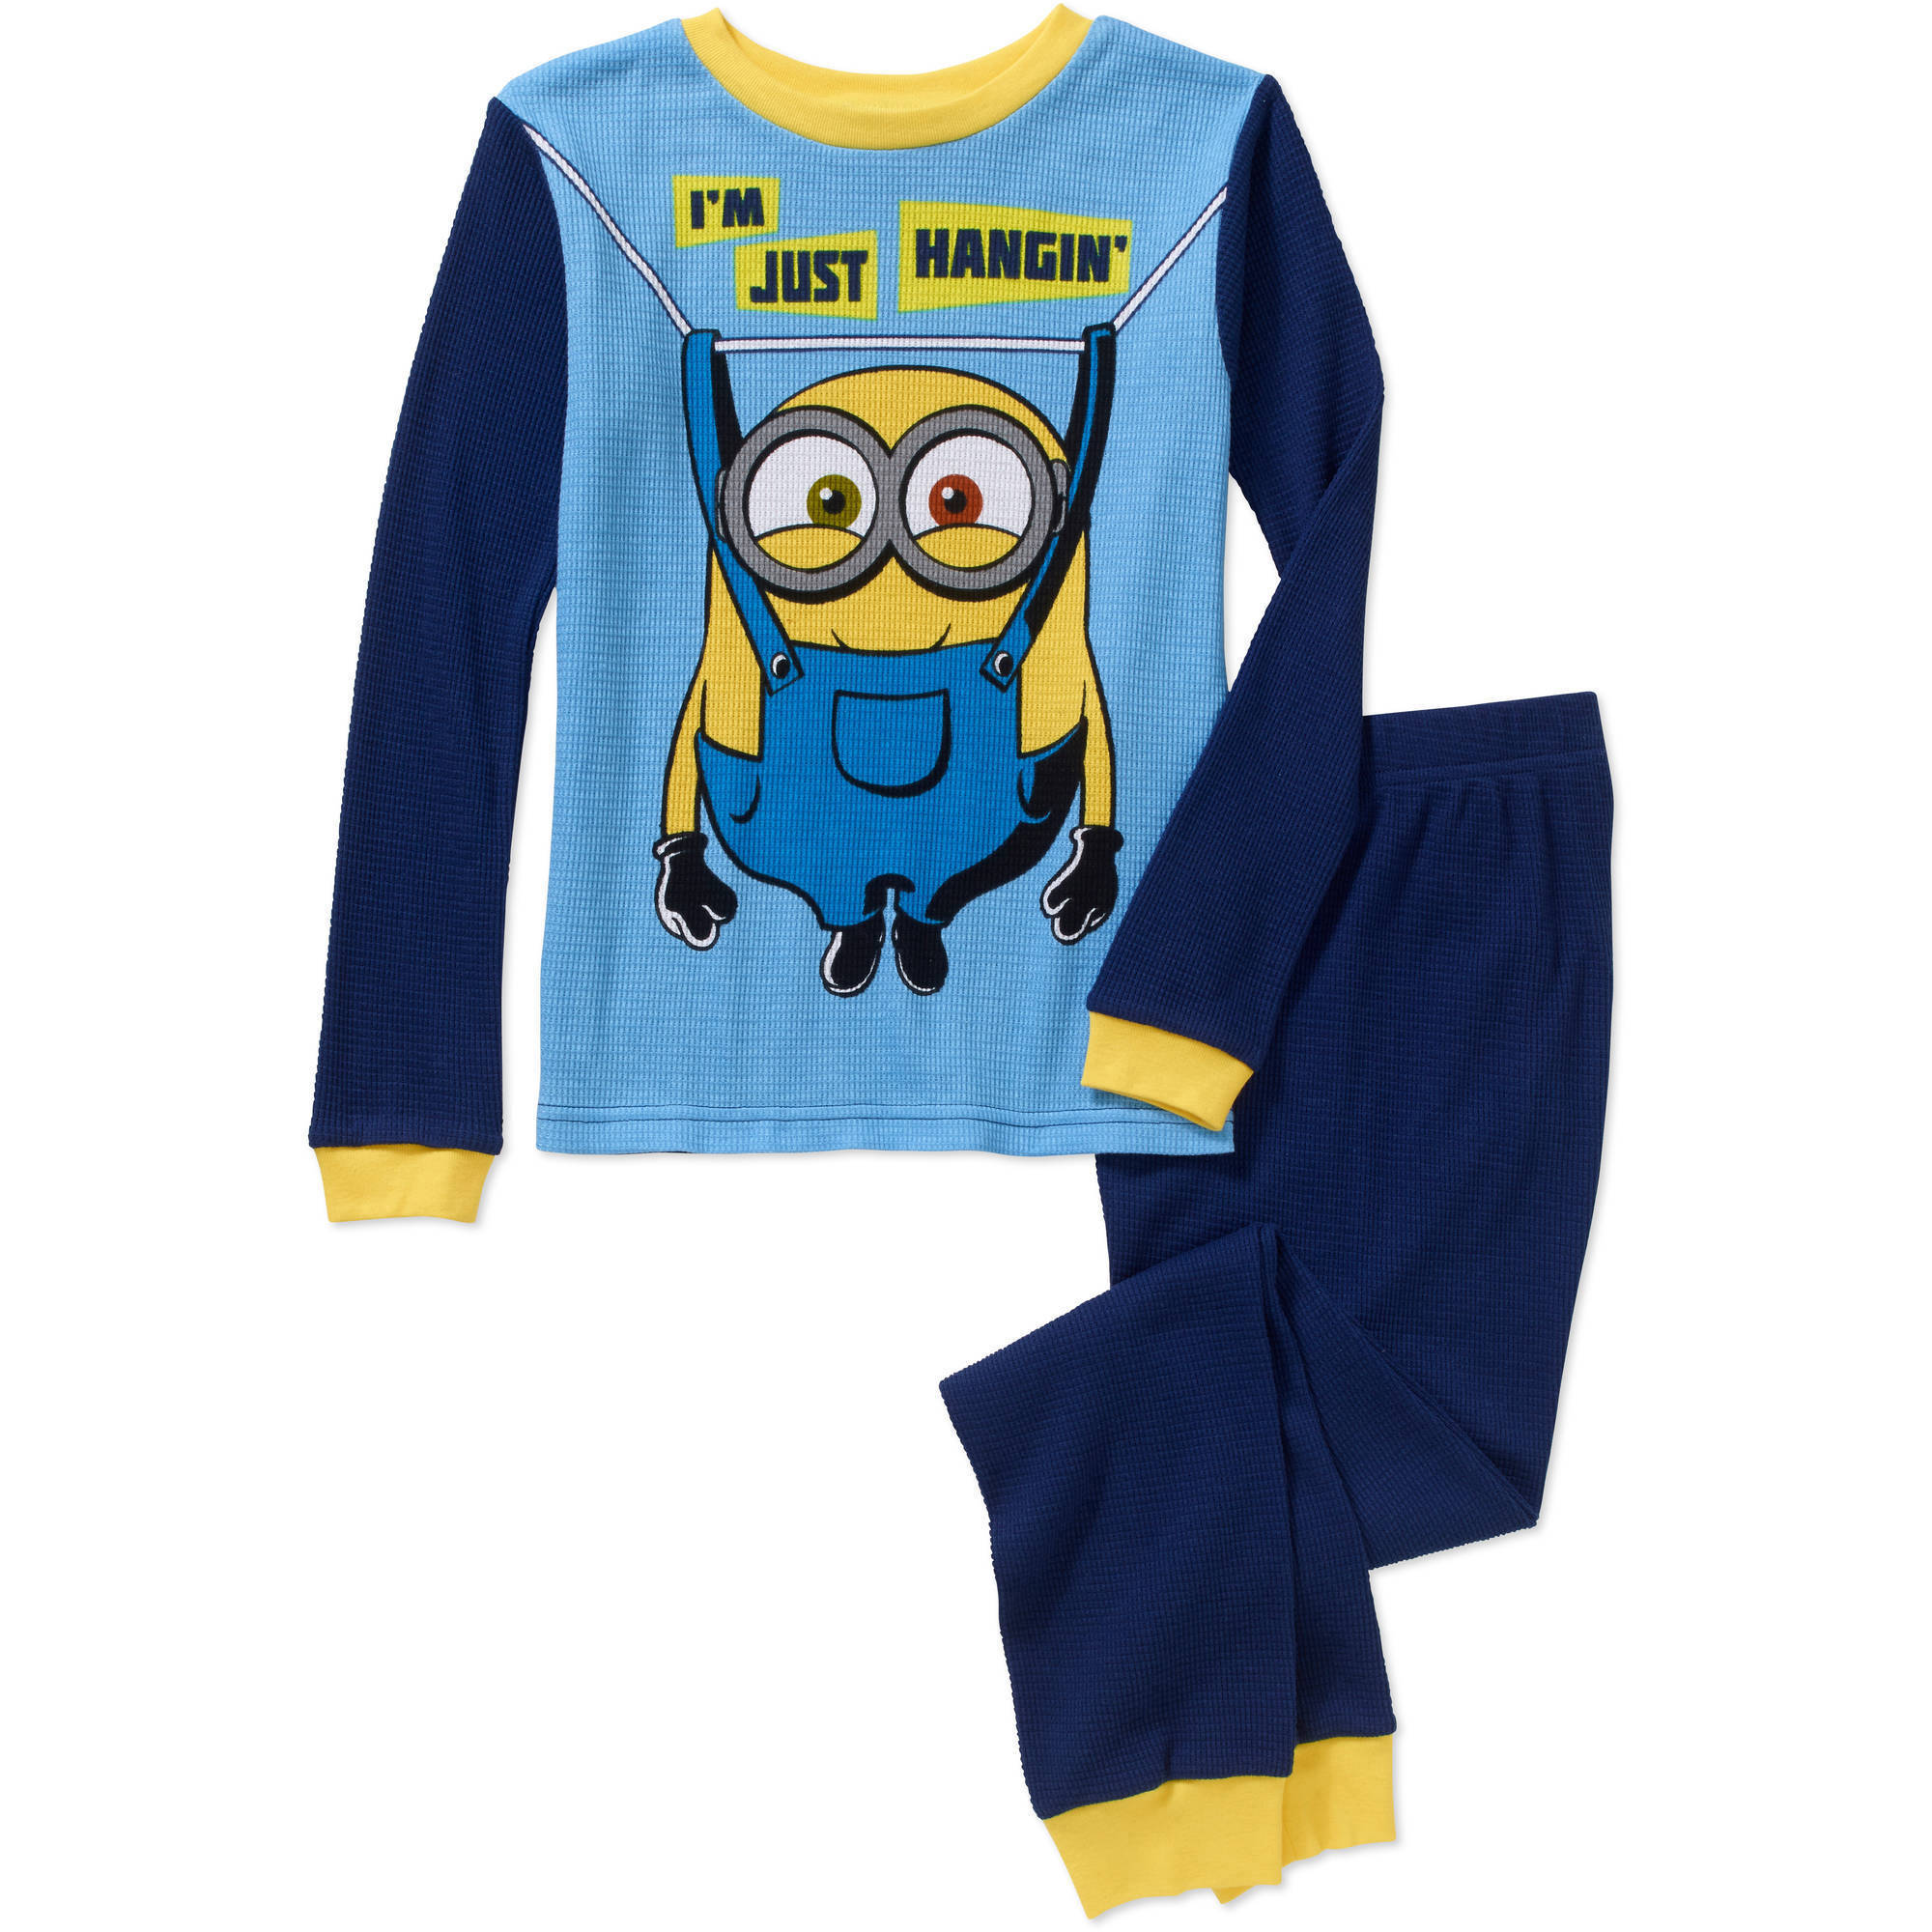 Boys' Licensed 2 Piece Cotton Thermal Set, Available in 3 Characters